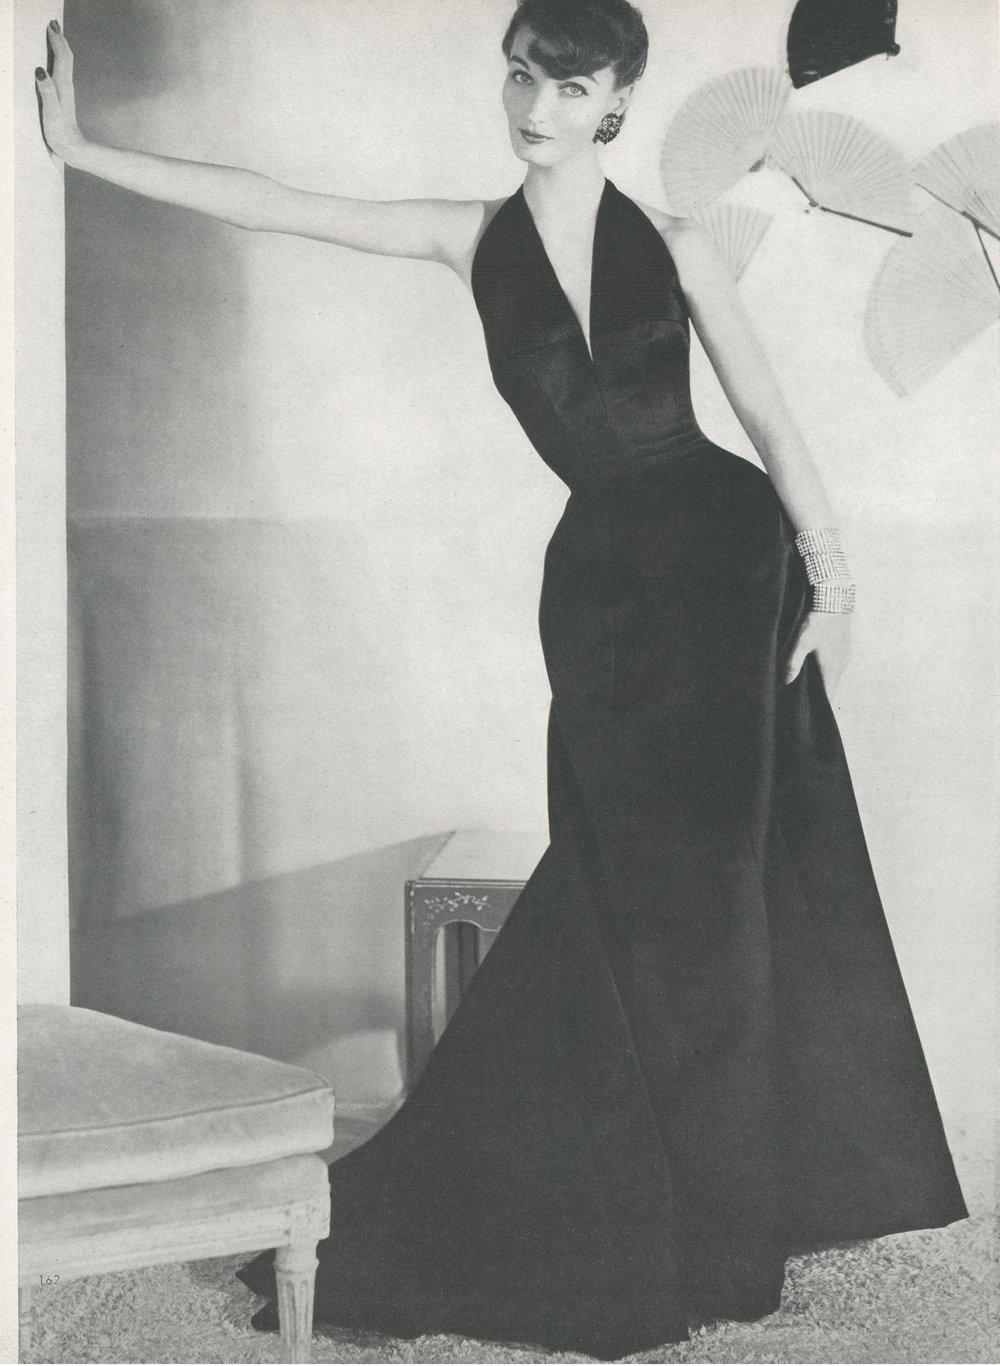 Galanos' first appearance in Vogue—a sculpted silk satin halter evening dress. Photographed by Horst P. Horst for Vogue, September 1953.